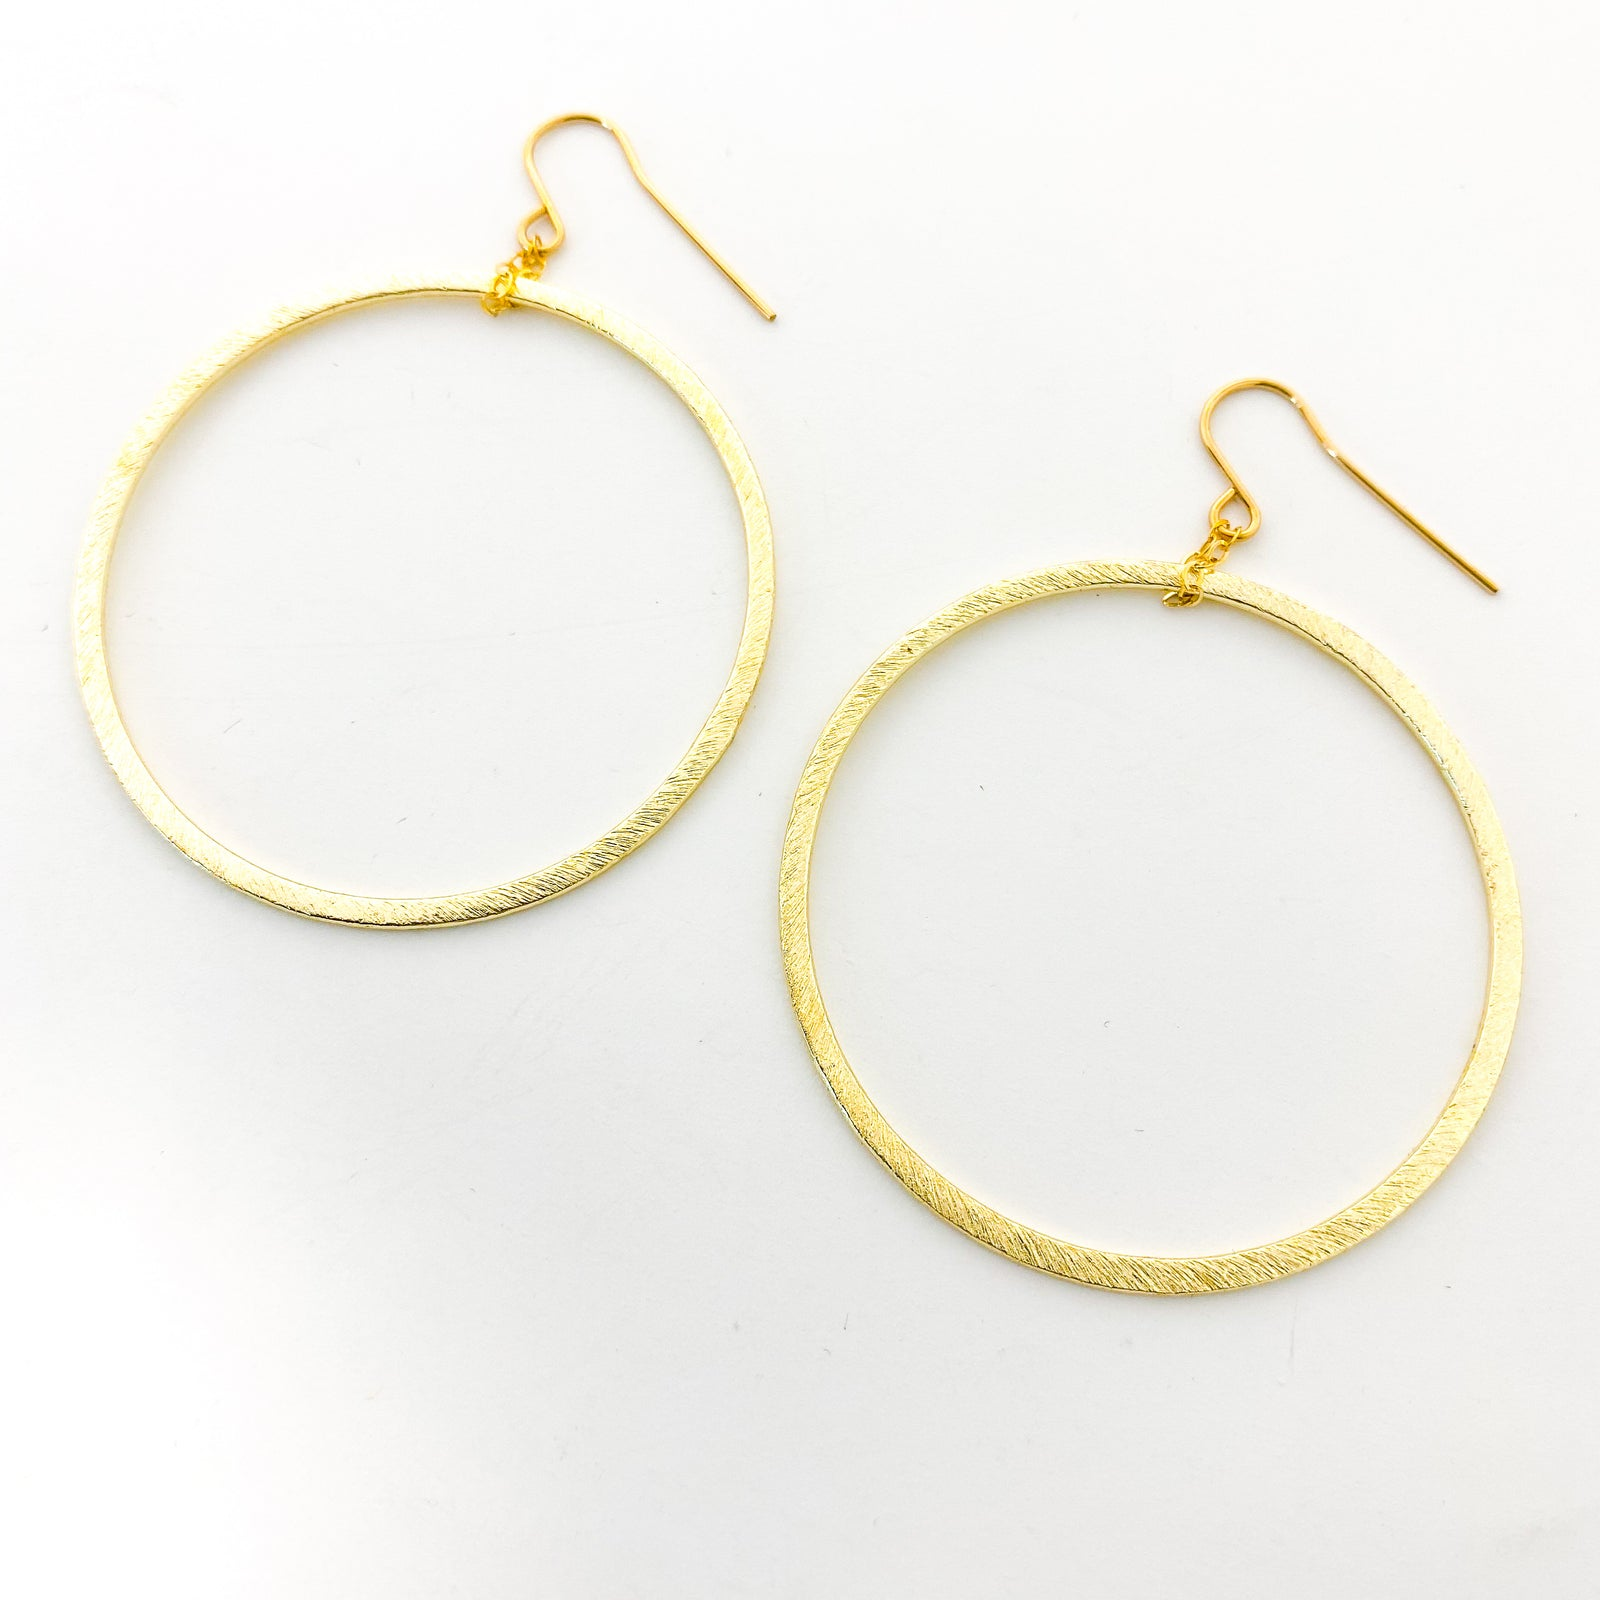 HANGING BRUSHED HOOPS | 14K GOLD-FILLED | SIZE OPTIONS